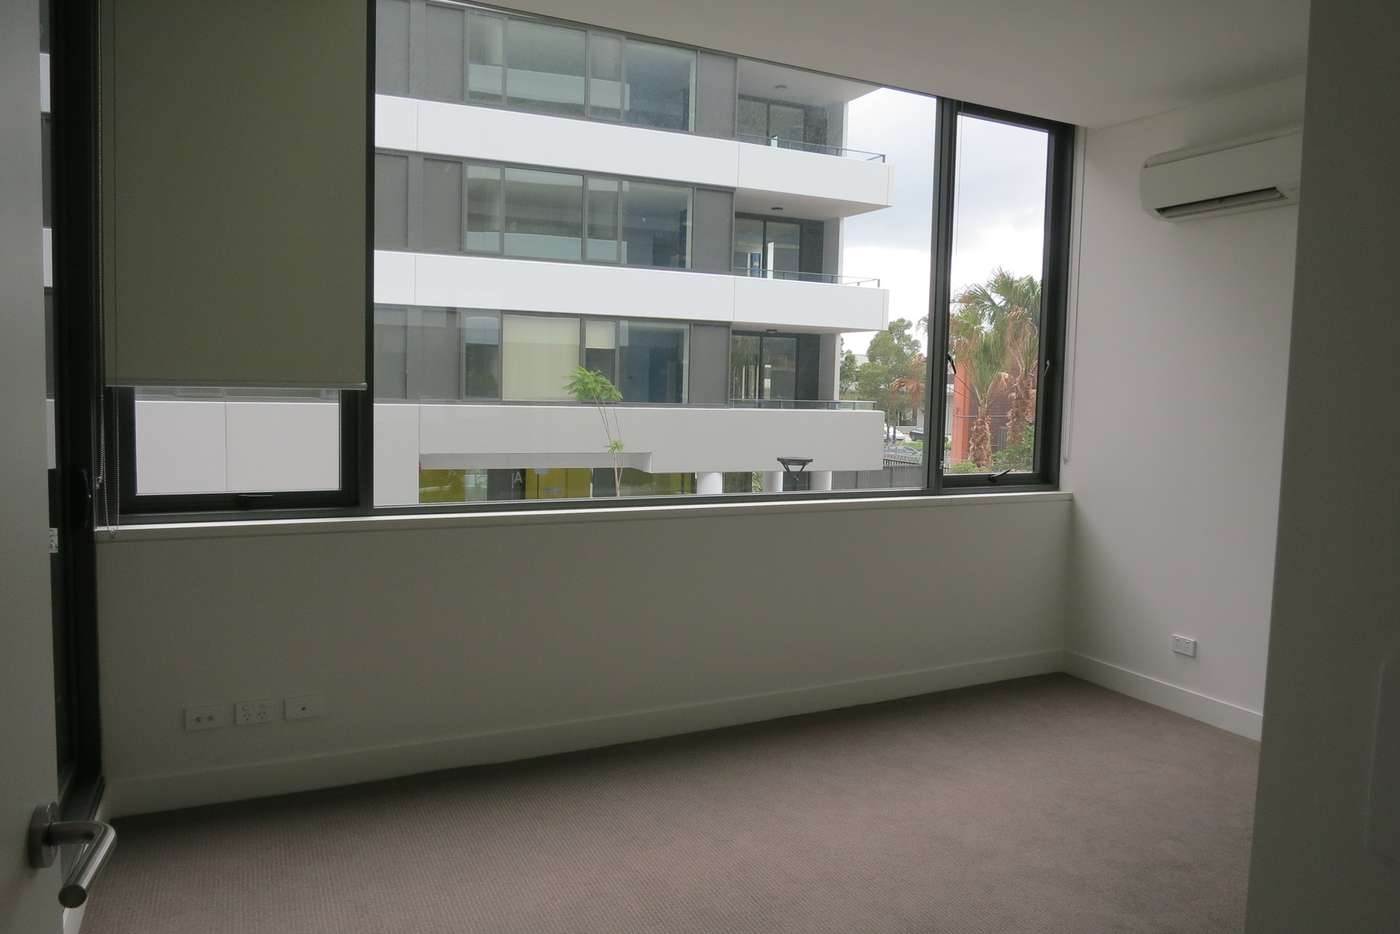 Fifth view of Homely apartment listing, 95/619-629 Gardeners Road, Mascot NSW 2020